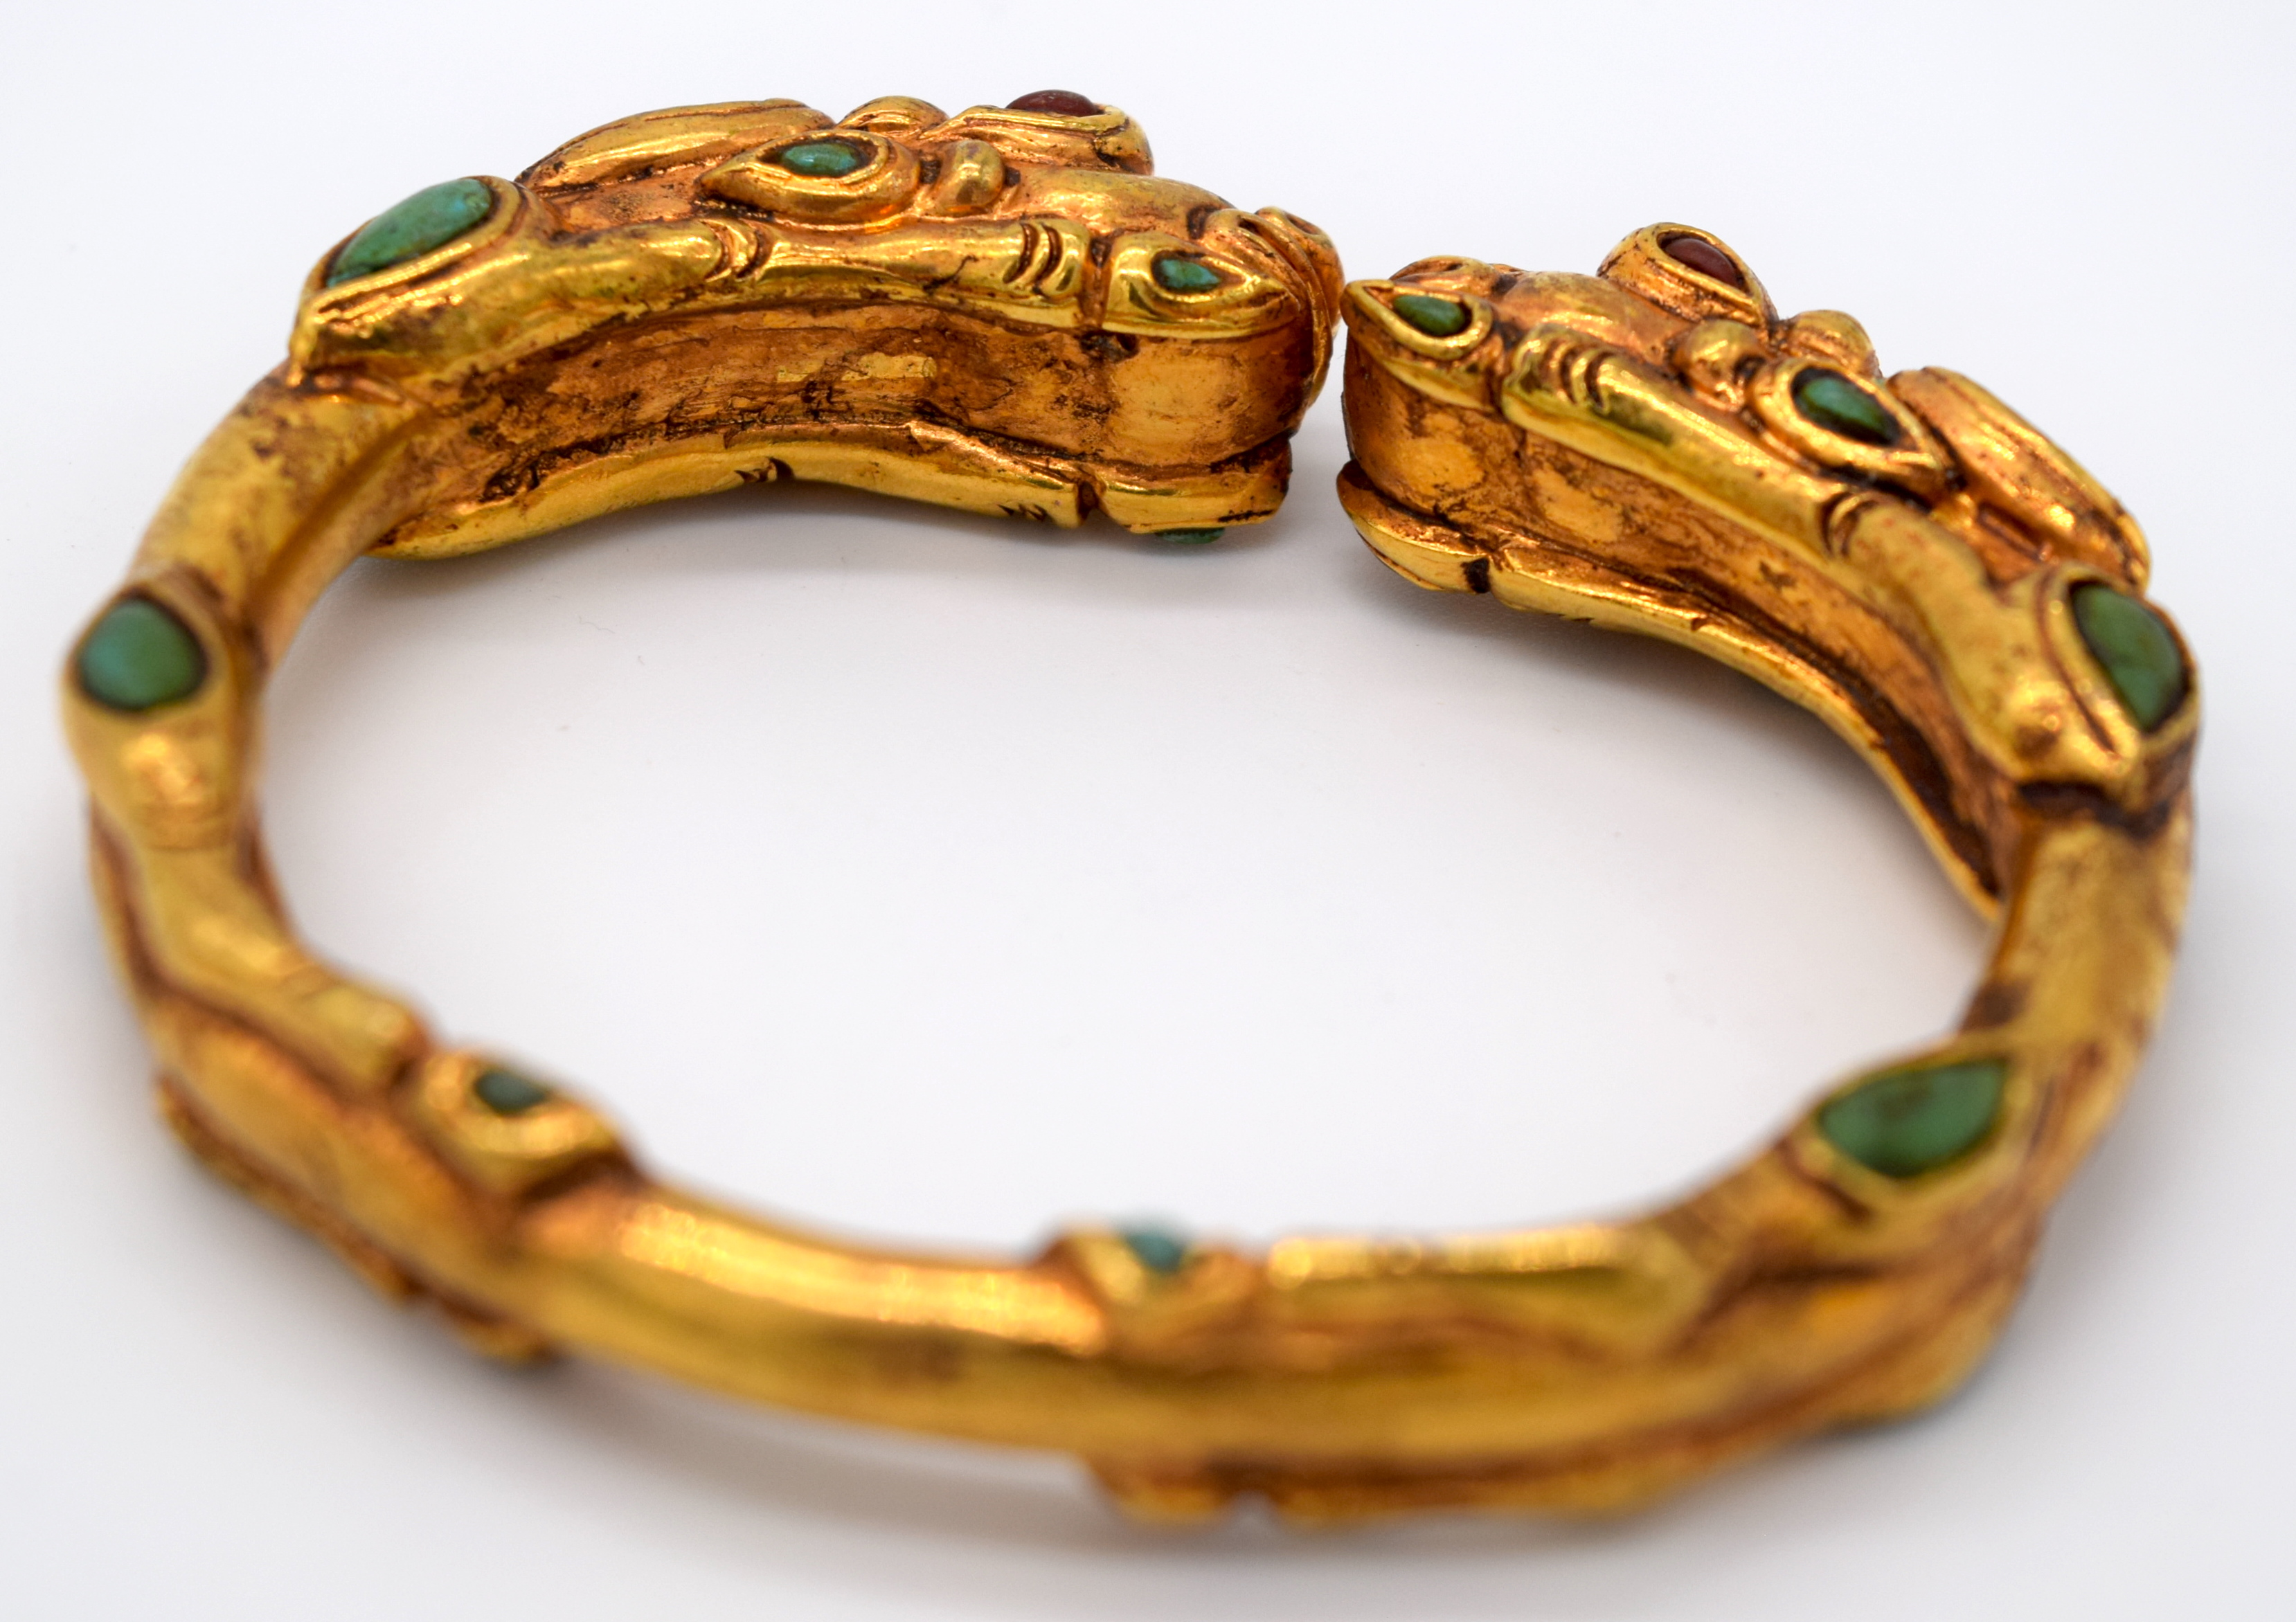 A Chinese yellow metal dragon bracelet inlaid with turquoise stones 7.5 x 6.5cm - Image 4 of 4